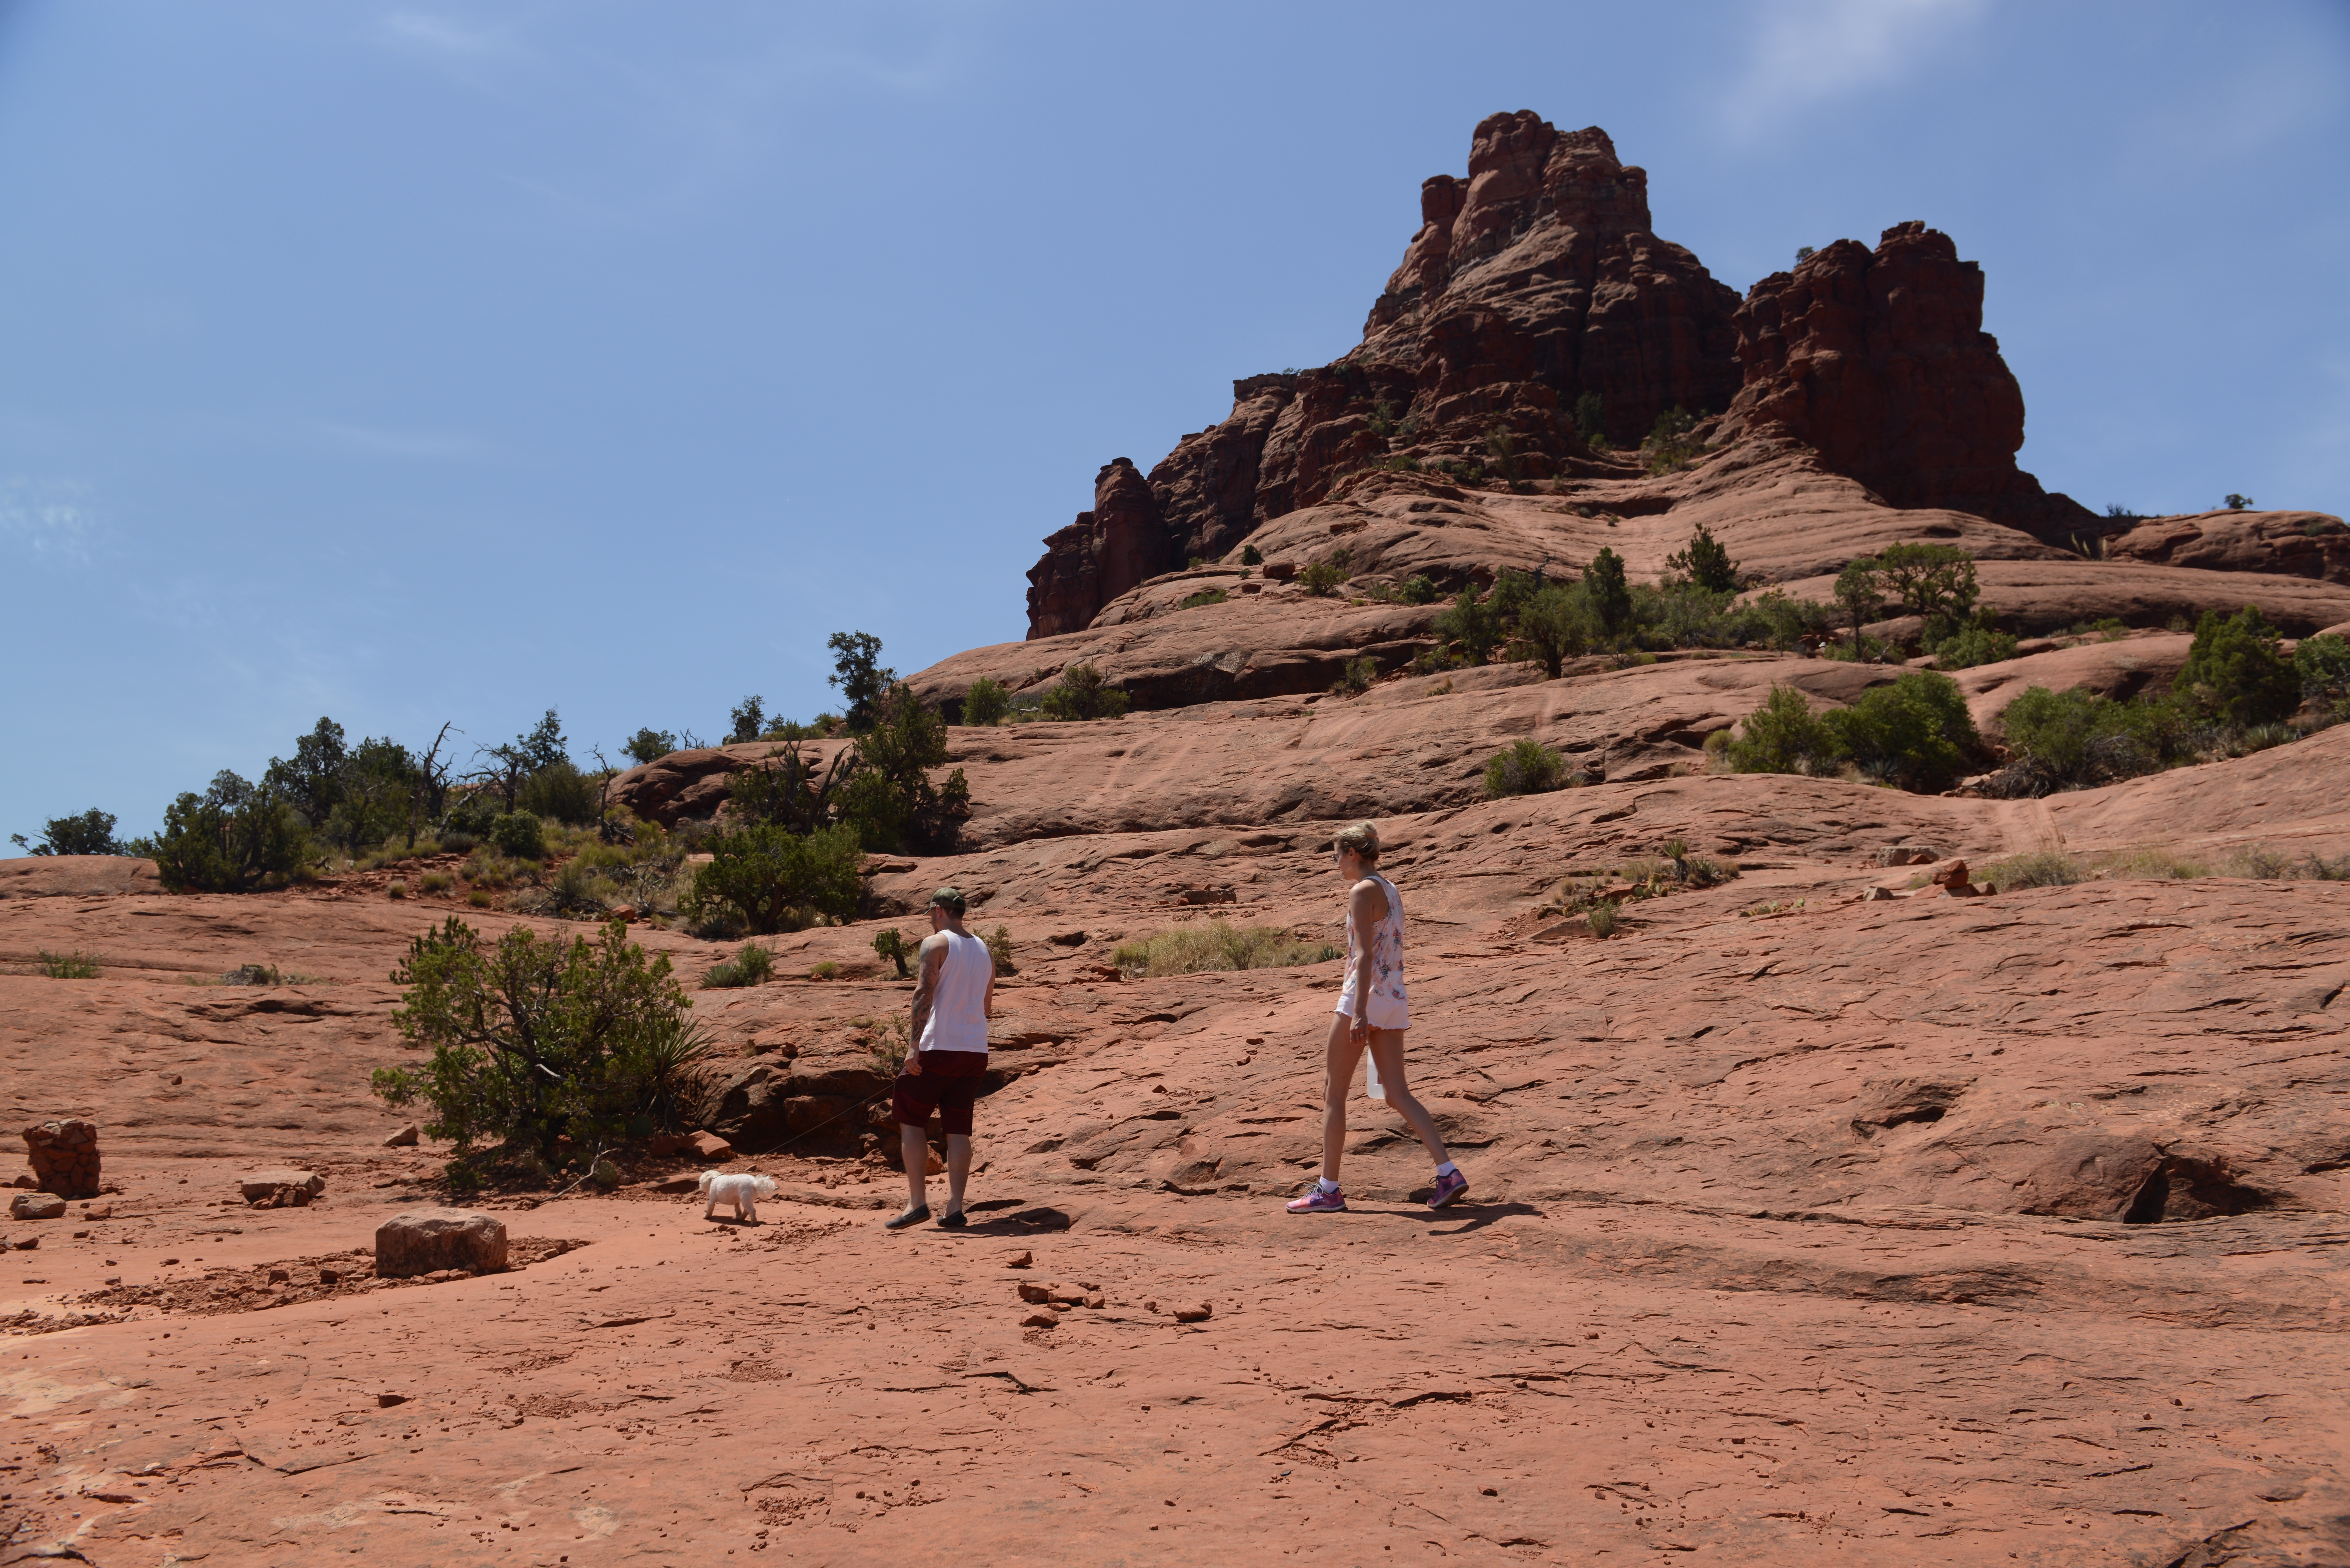 Free download high resolution image - free image free photo free stock image public domain picture -Hiker deciding to hike Cathedral Rock located in Sedona Arizona